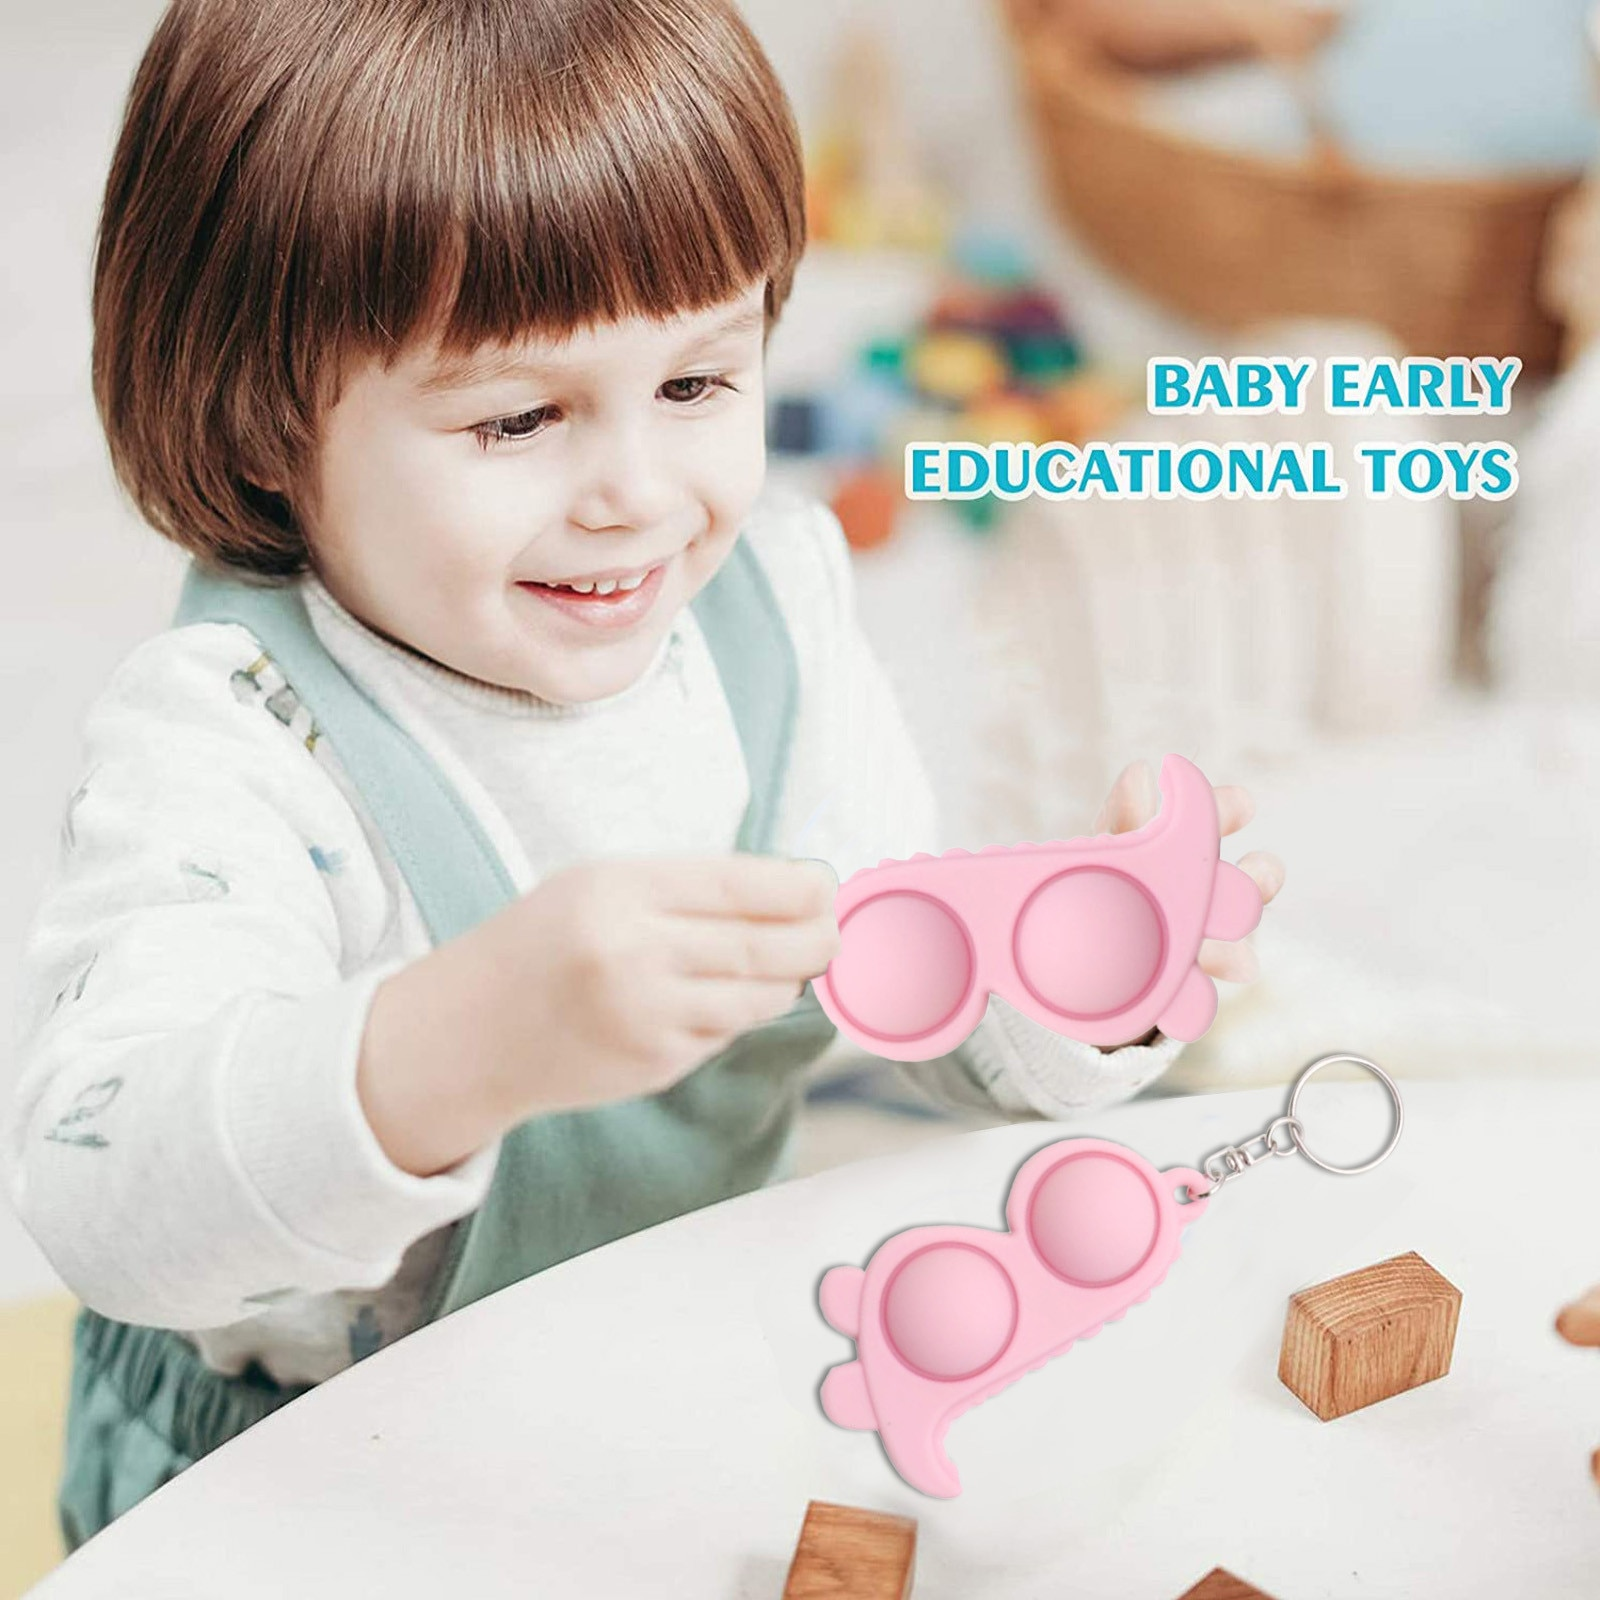 Hcd9db39b13da4d09883654d77ff3b35cf - #AA Simple Dimple Fidget Toys Adult Children Antistress Hand Toys Pressure Reliever Board Controller Reliver Stress Toys